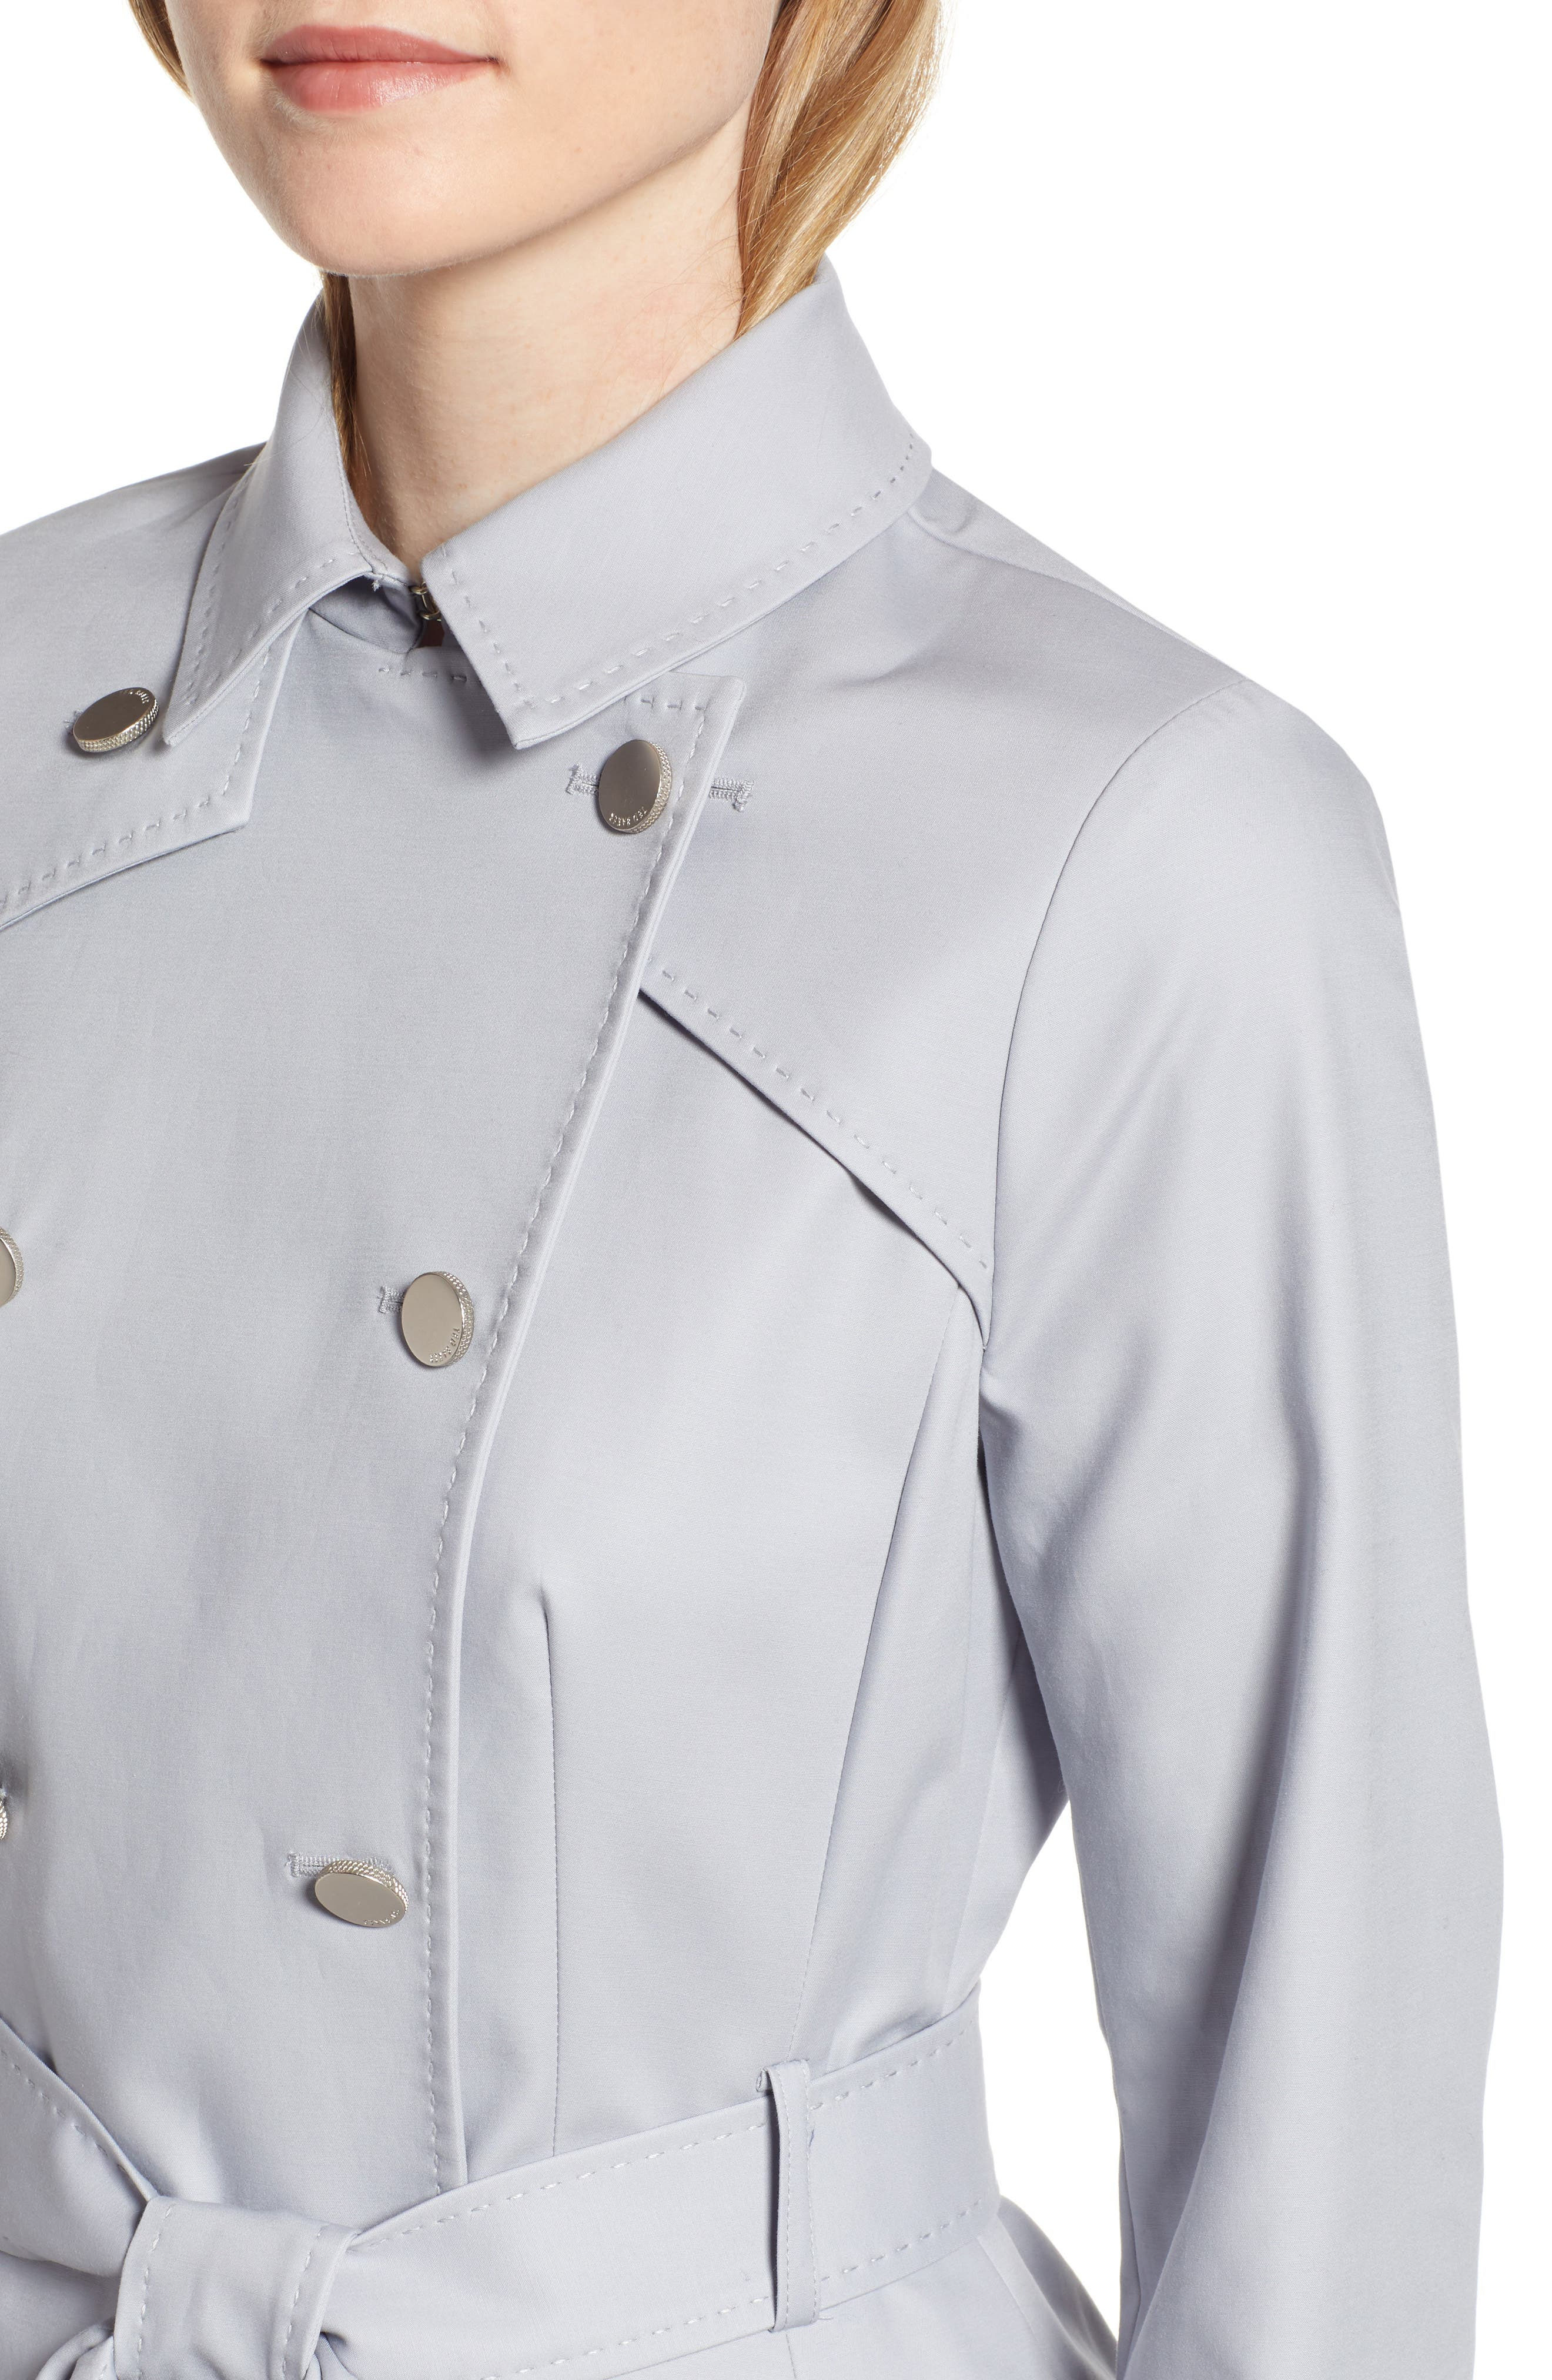 TED BAKER LONDON, Tie Cuff Detail Trench Coat, Alternate thumbnail 5, color, GREY